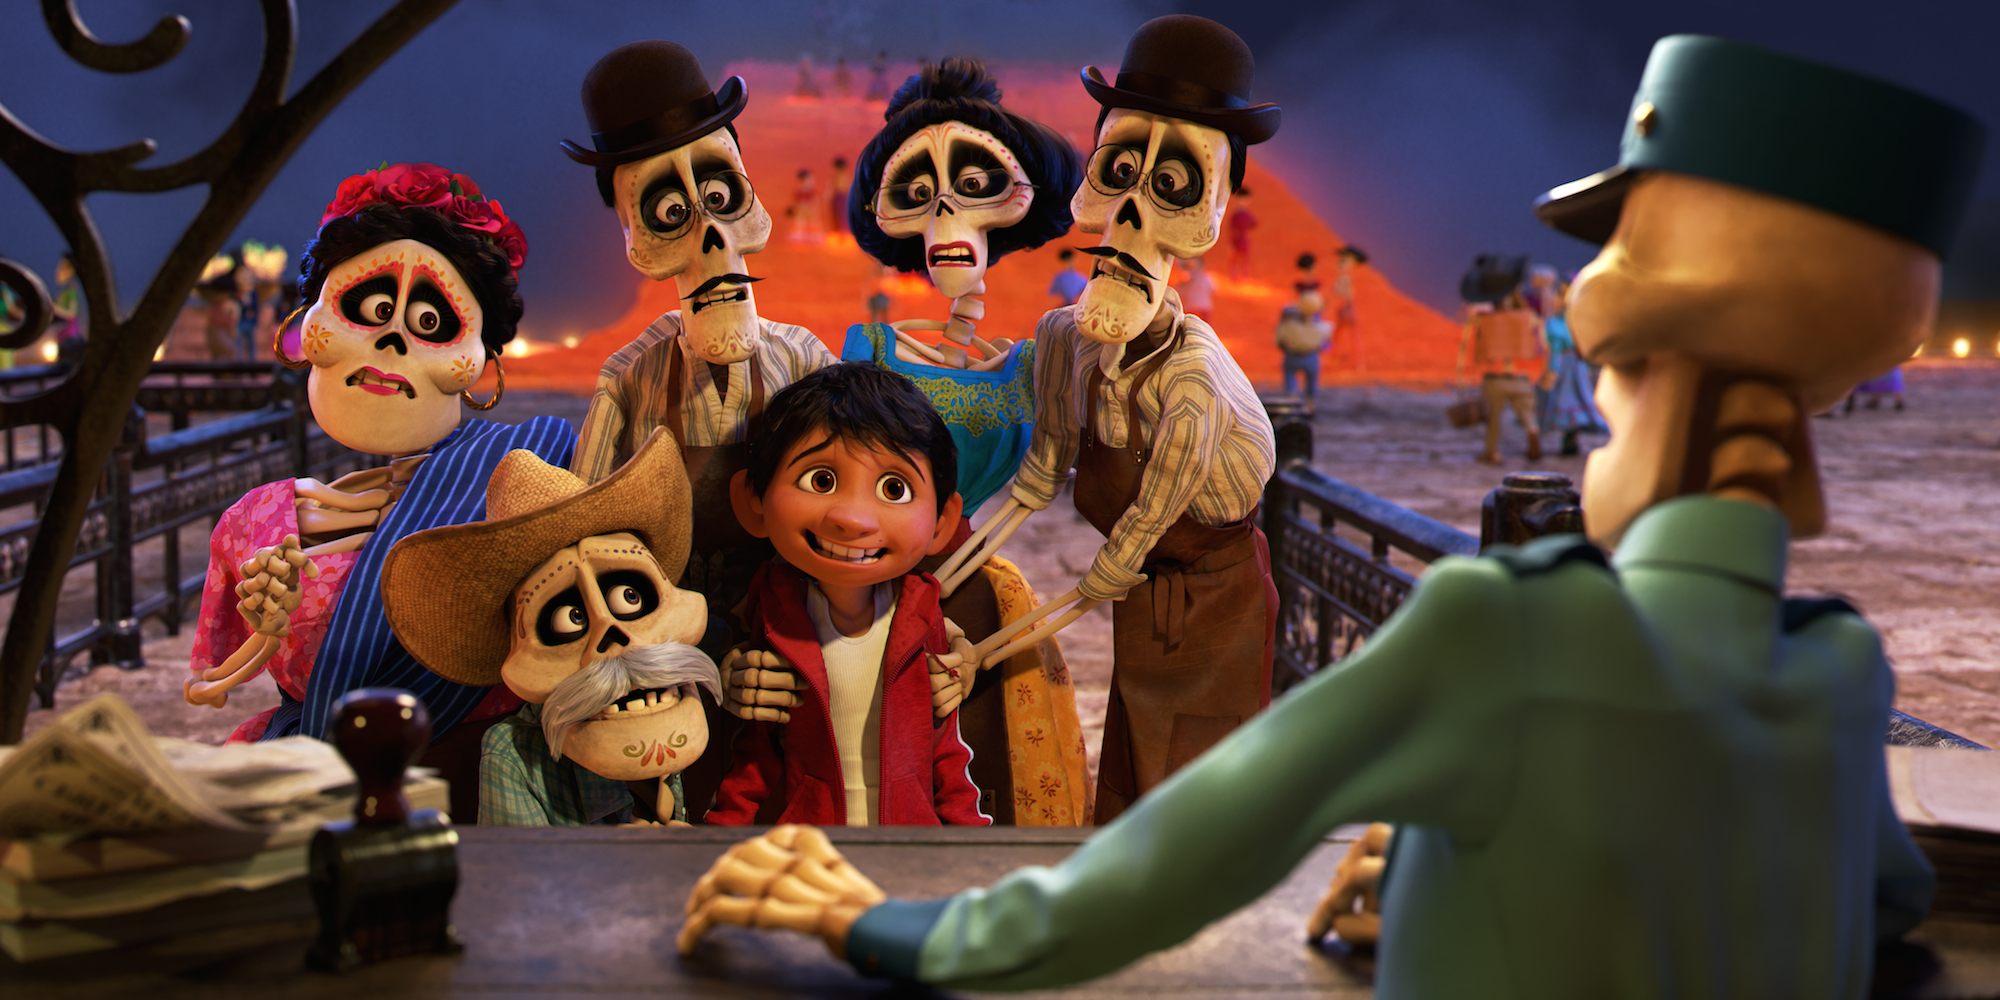 'Coco' Is Back in Theaters Just in Time for Día de Muertos